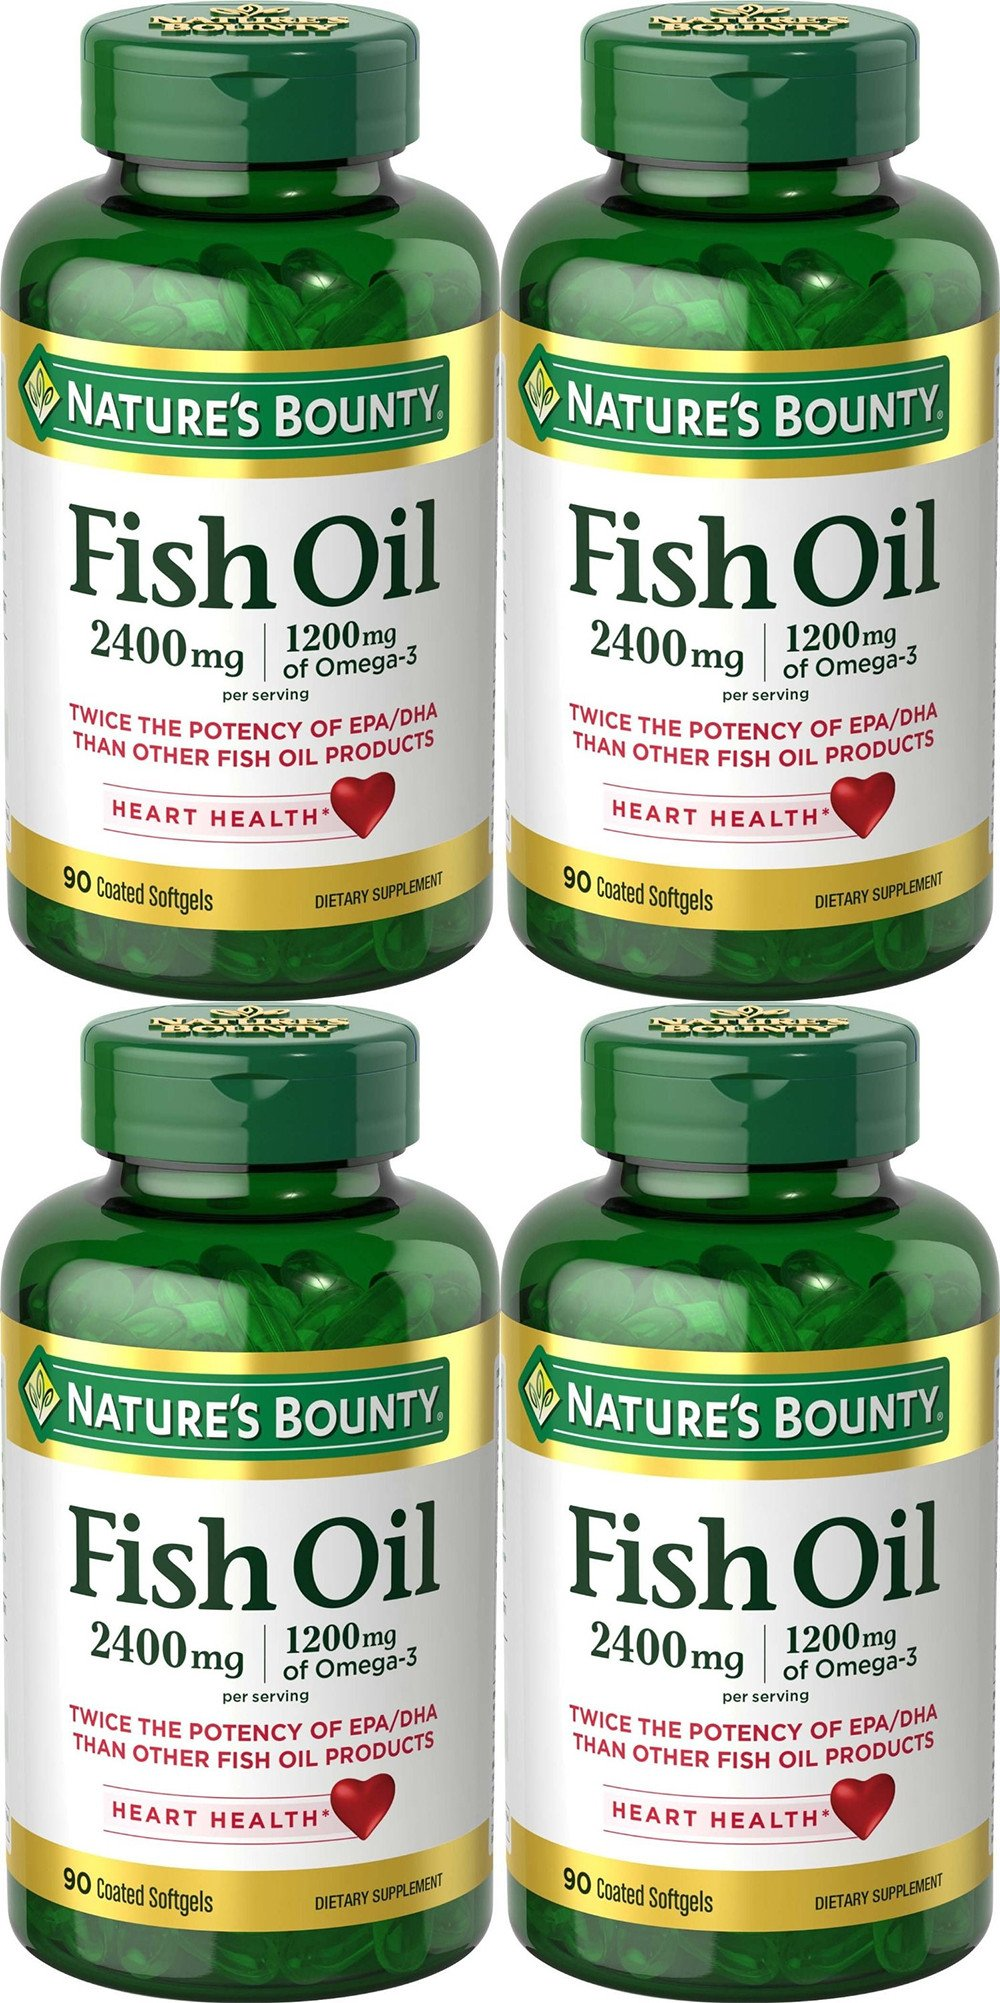 Natures Bounty Fish Oil 2400 mg Double Strength Odorless 90 Softgels (Pack of 4)